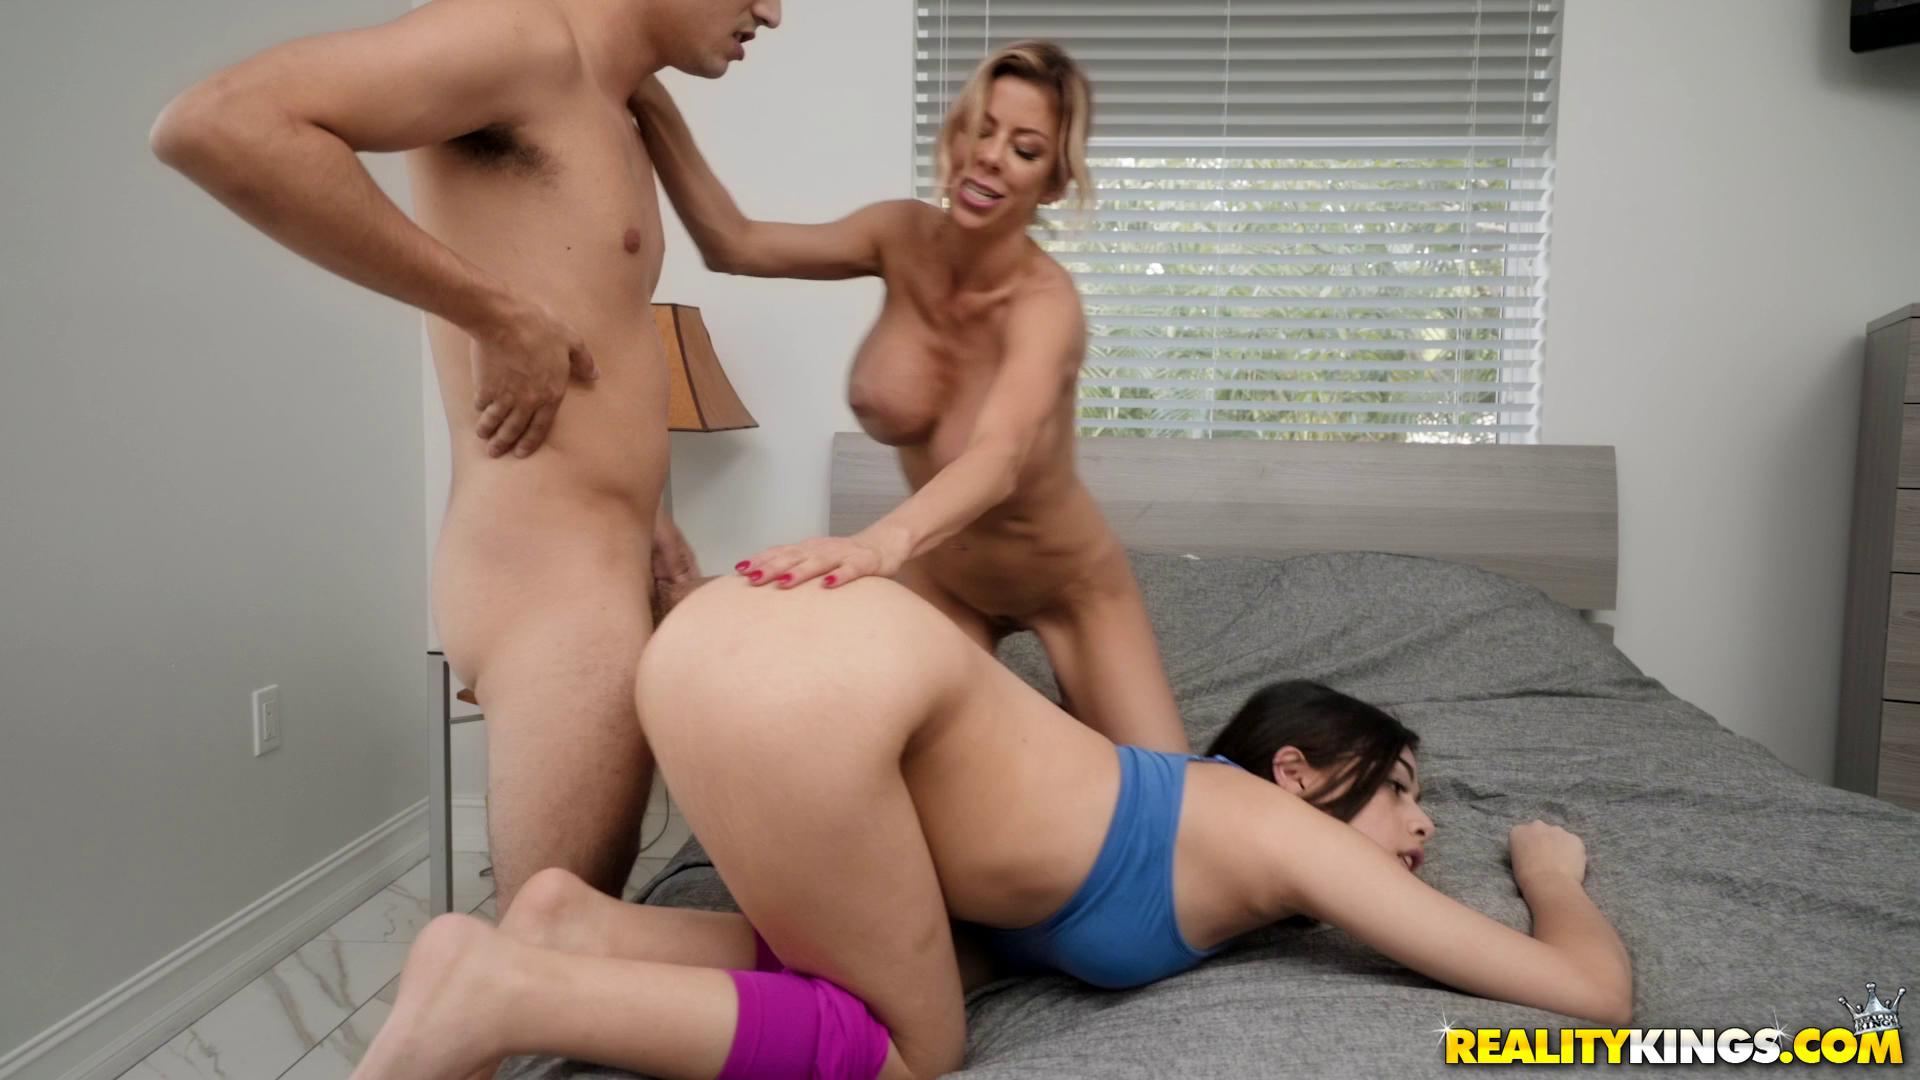 Alexis Fawx And Harmony Wonder Threesome With Harmony